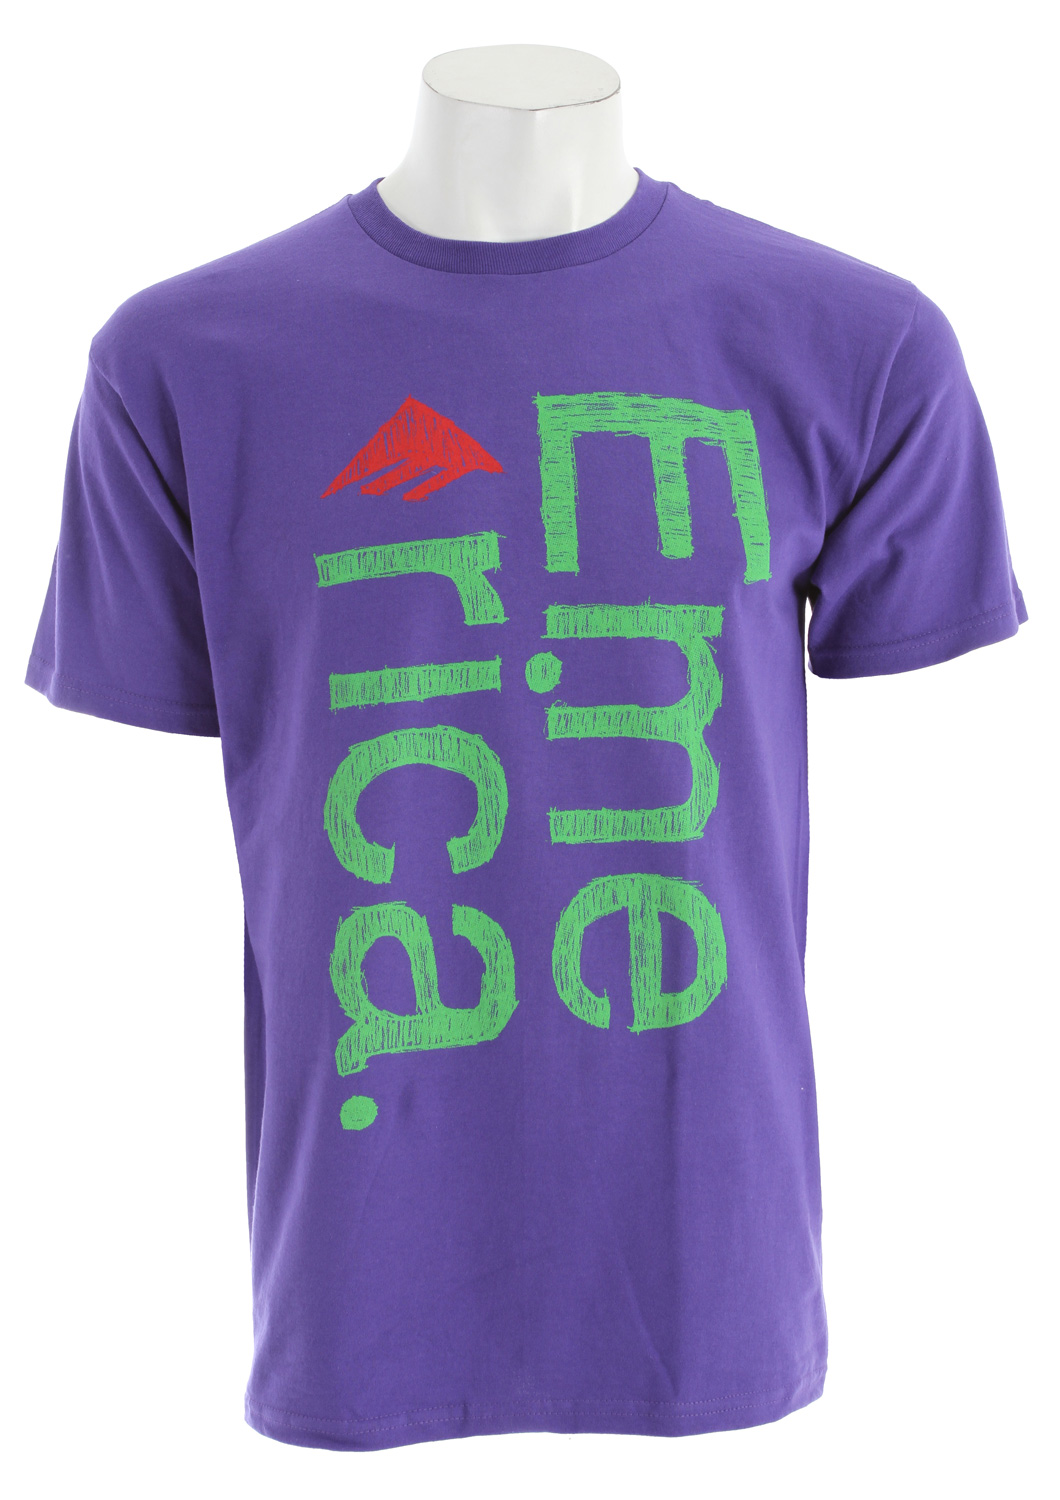 Key Features of The Emerica Scratch T-Shirt: Regular Fit Crew Neck Short Sleeve - $13.95